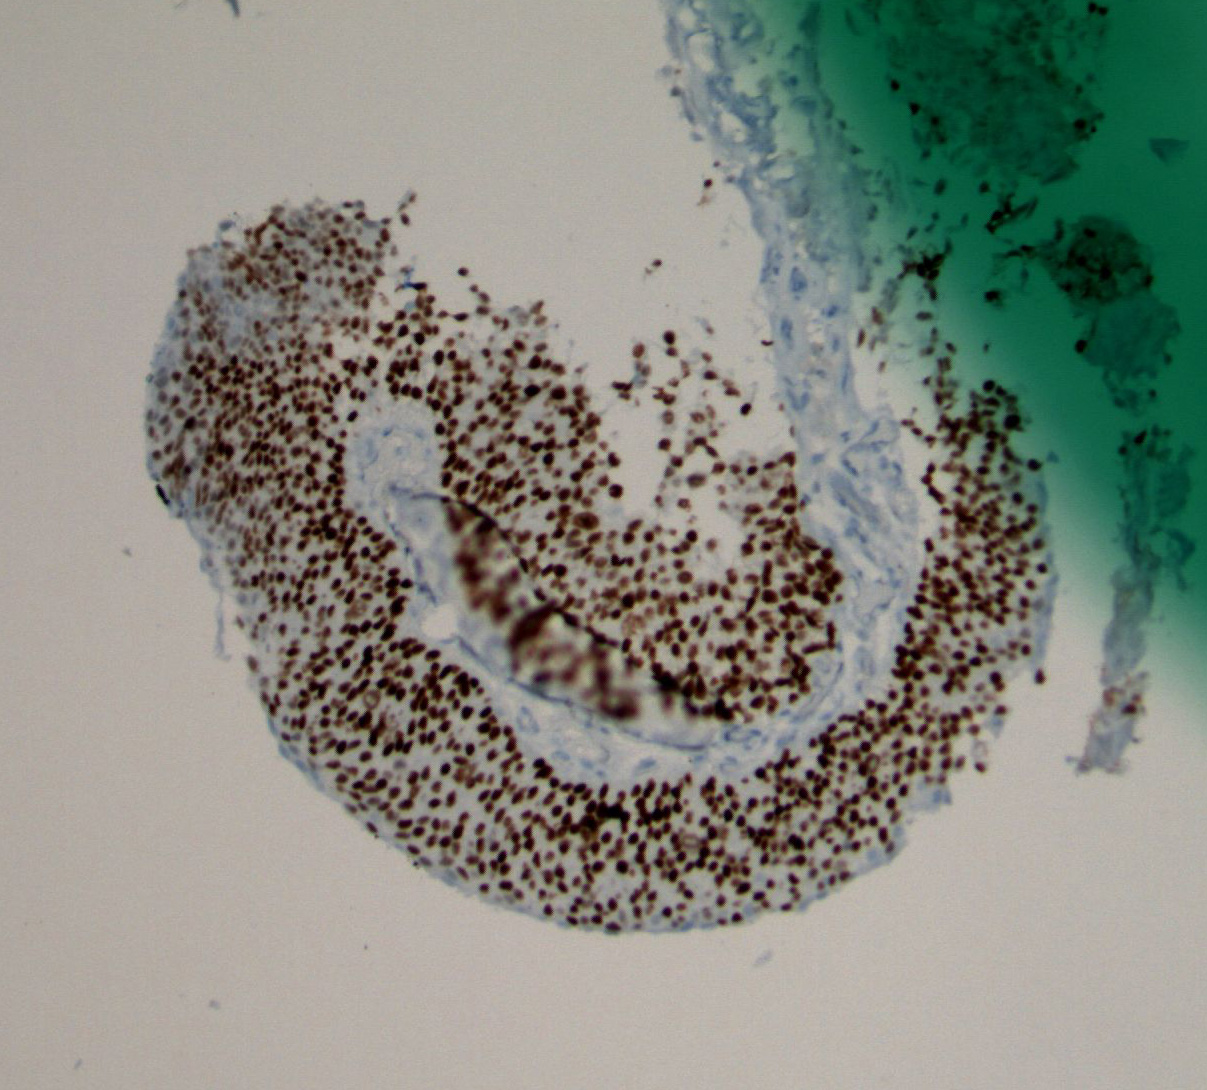 Image 3.  Immunohistochemical study shows diffuse, strong nuclear expression of p63.